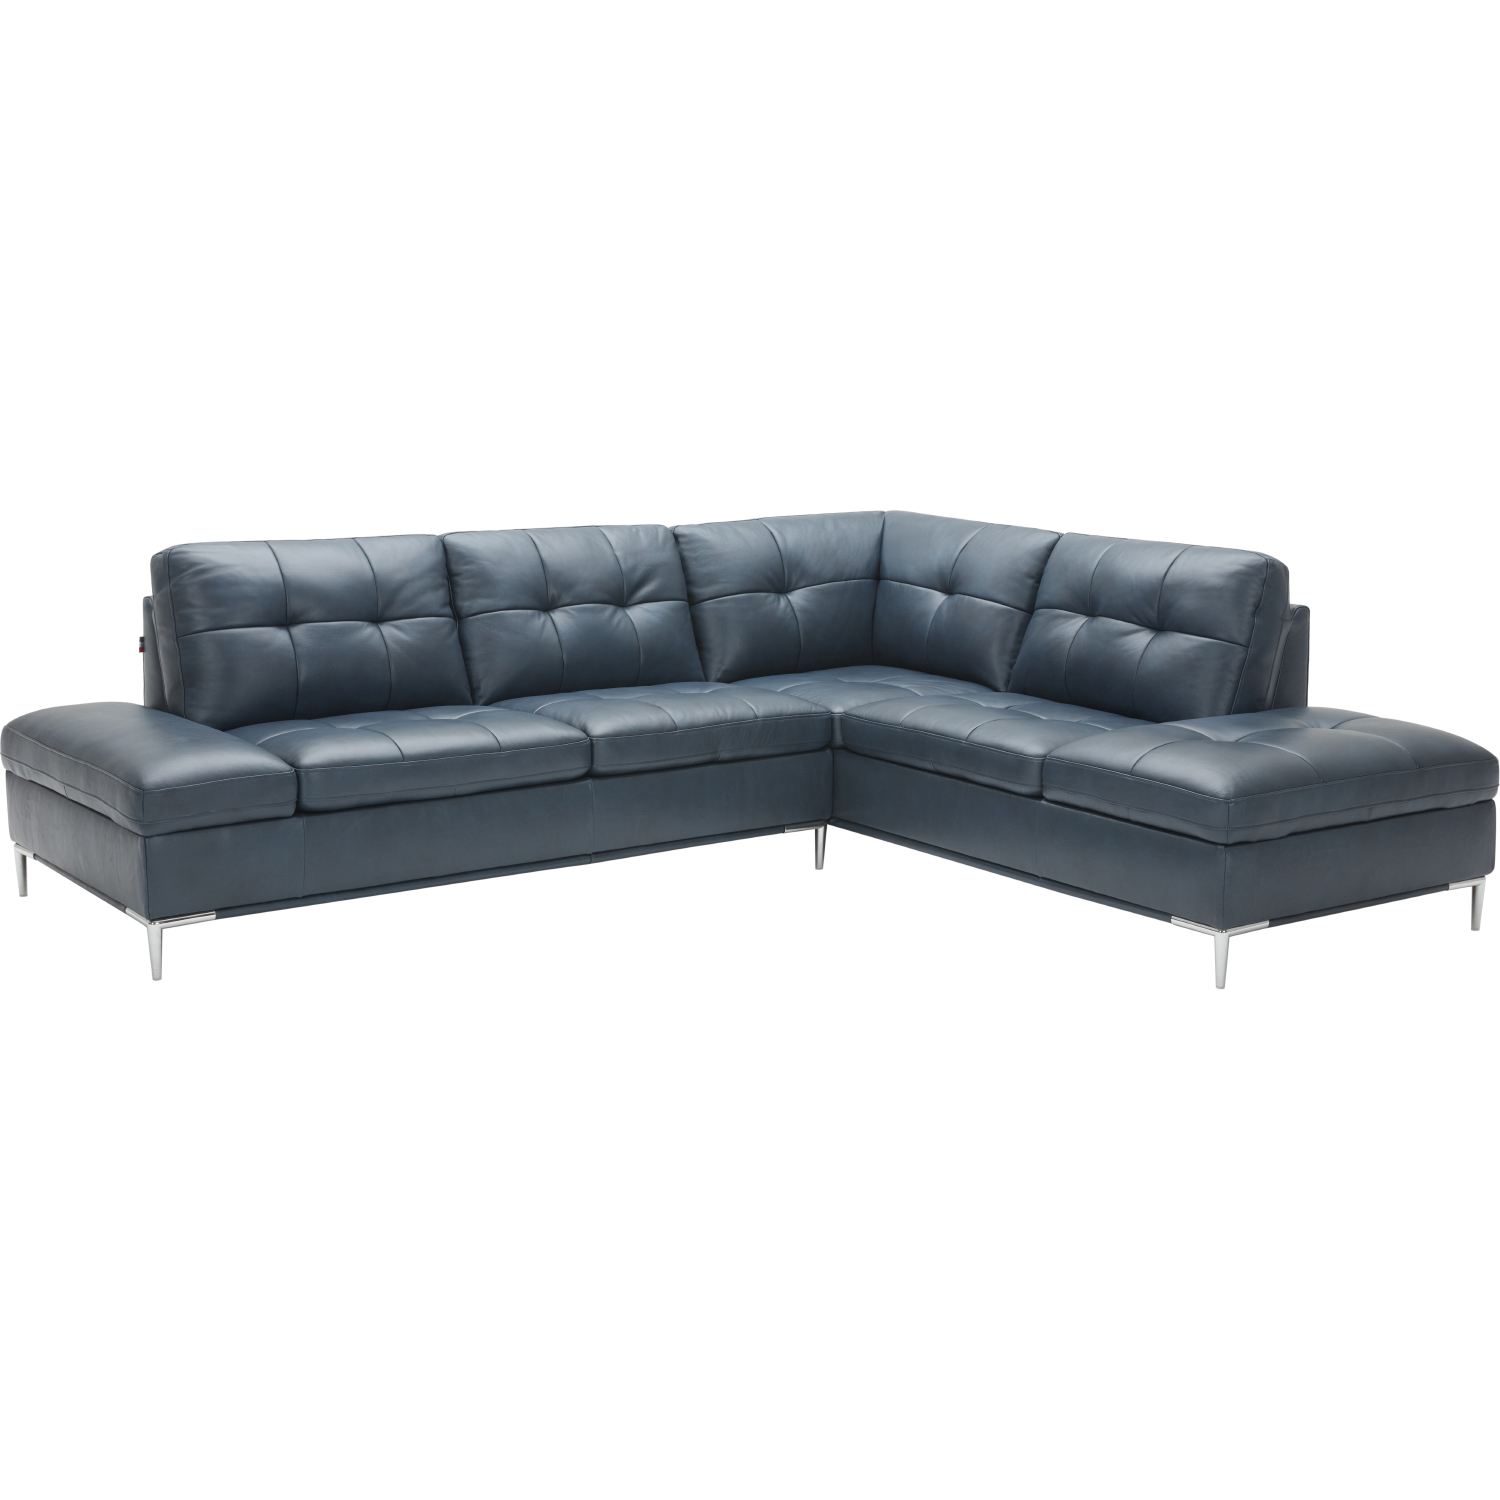 J M Furniture 18995 Rhfc Leonardo Sectional Sofa W Right Hand Facing Chaise In Navy Blue Leather